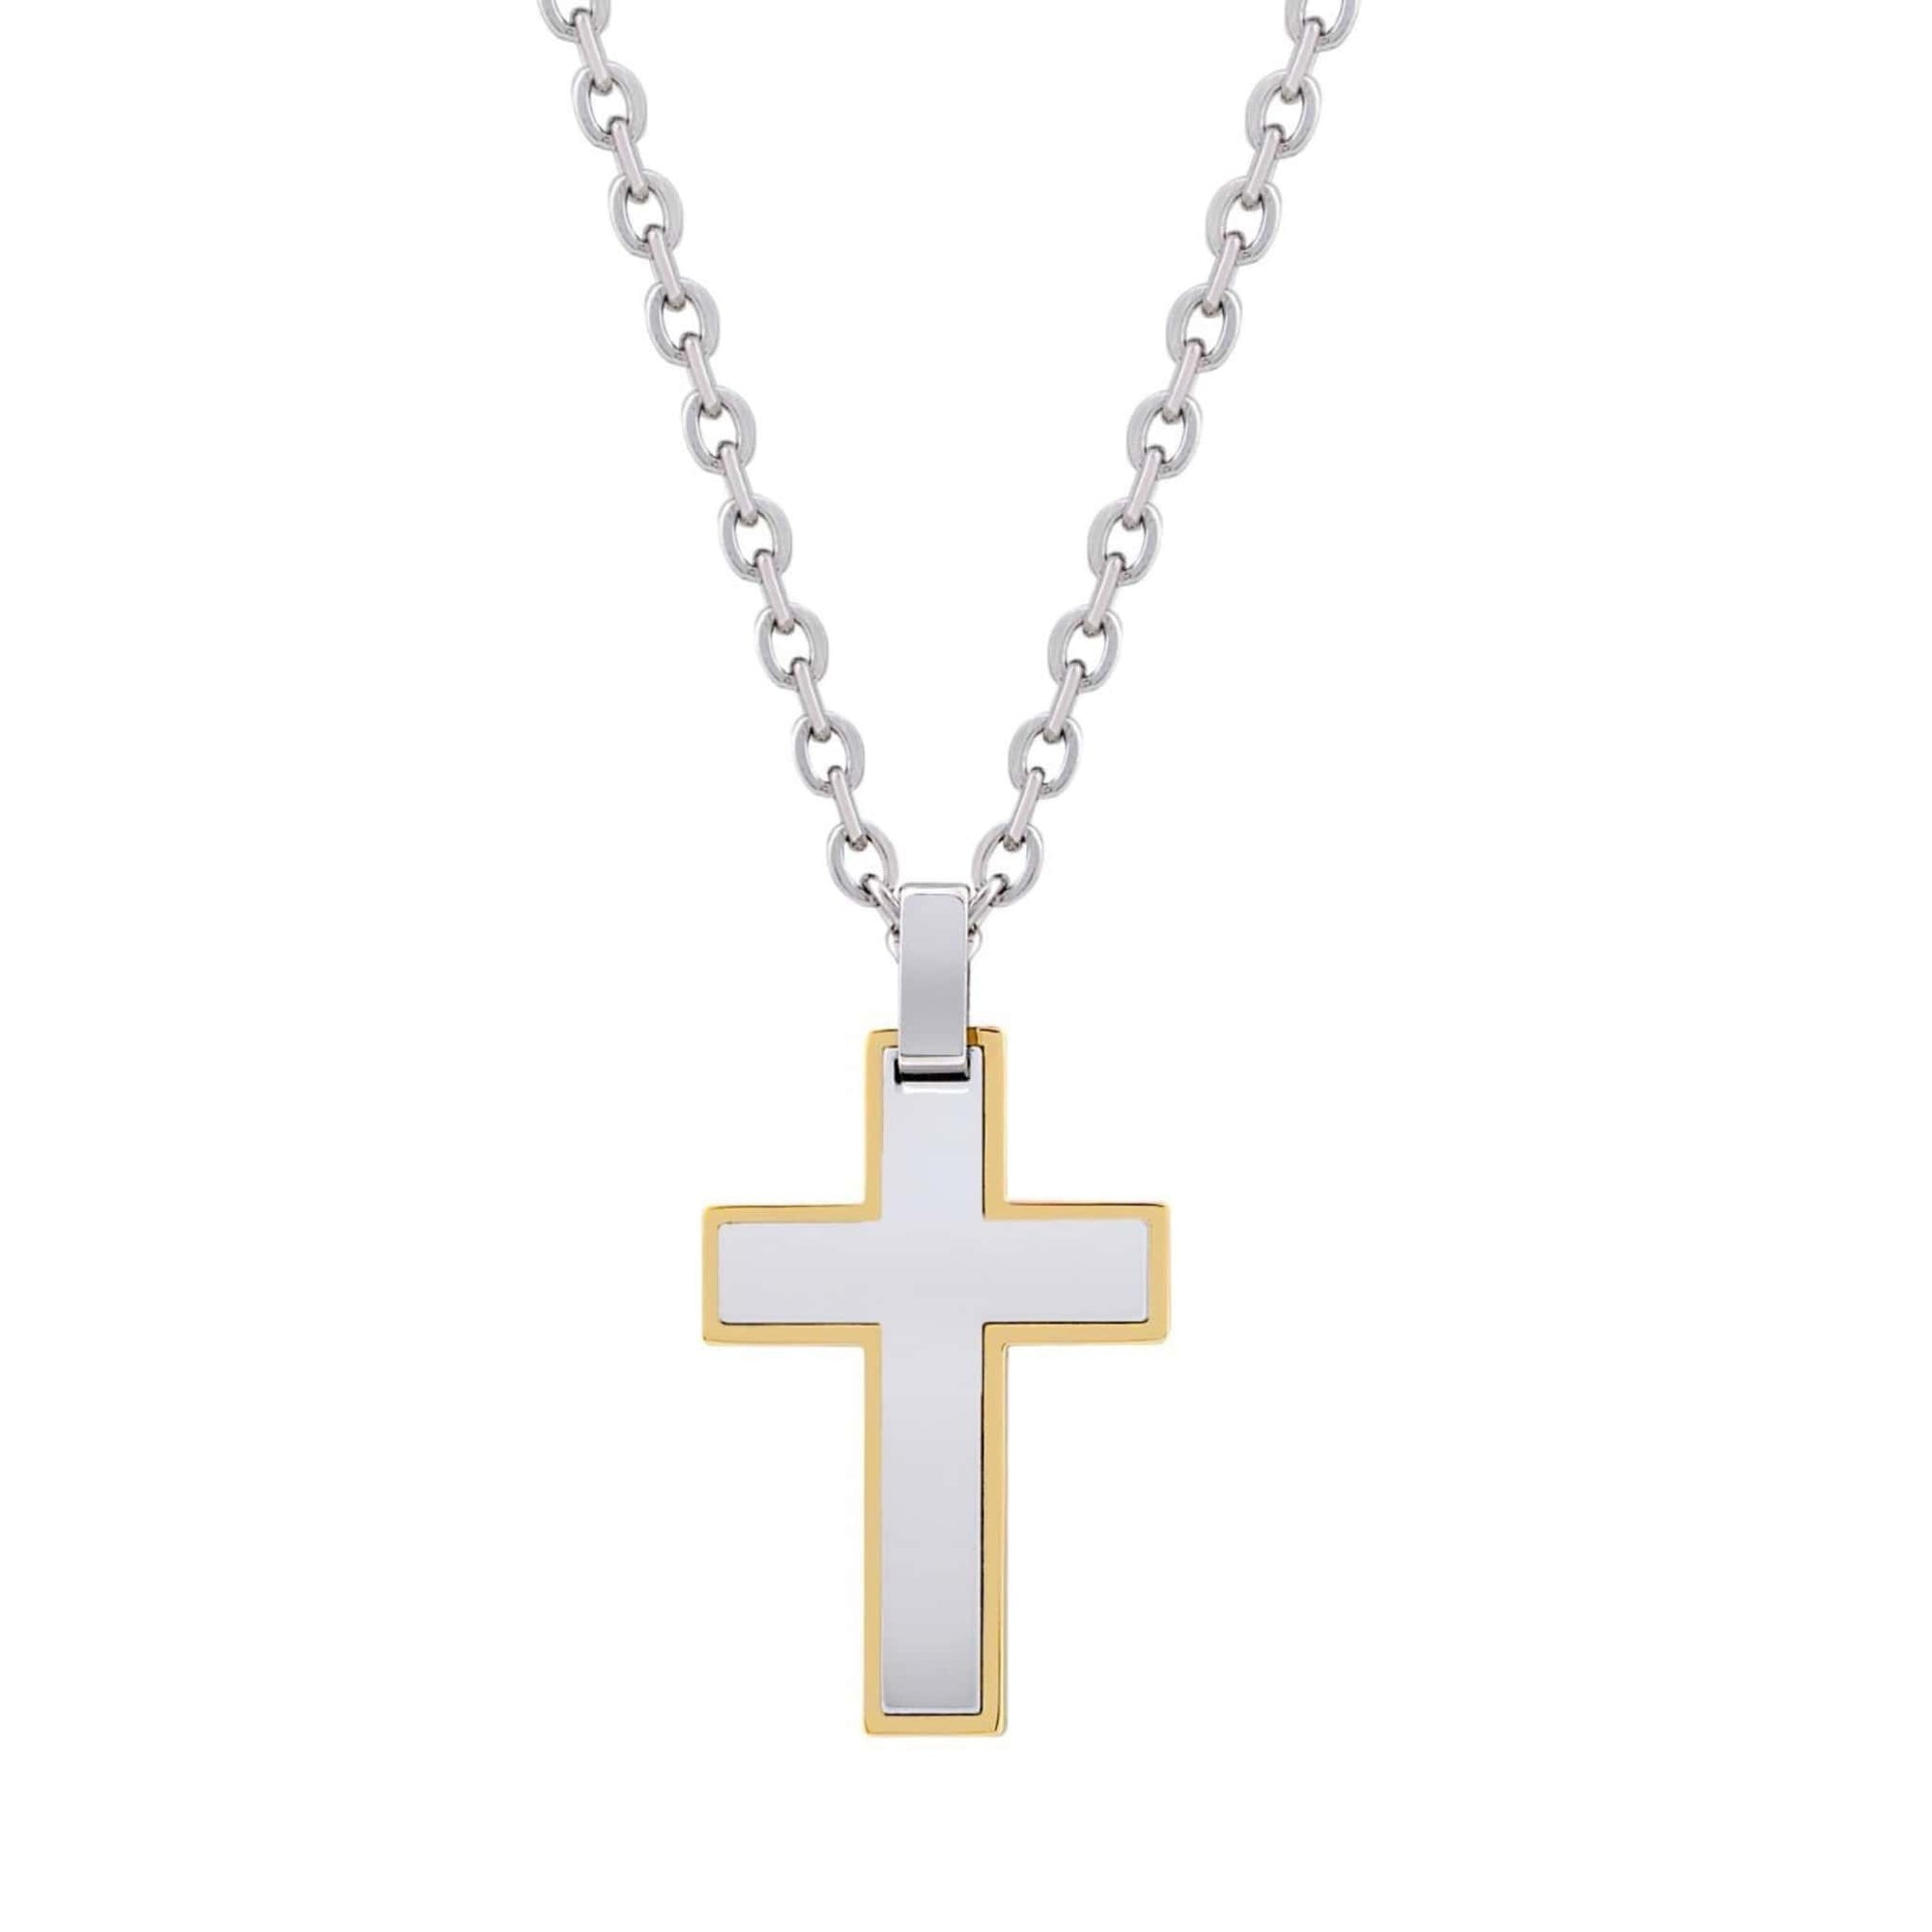 Men's Black Stainless Steel Cross Pendant at Arman's Jewellers